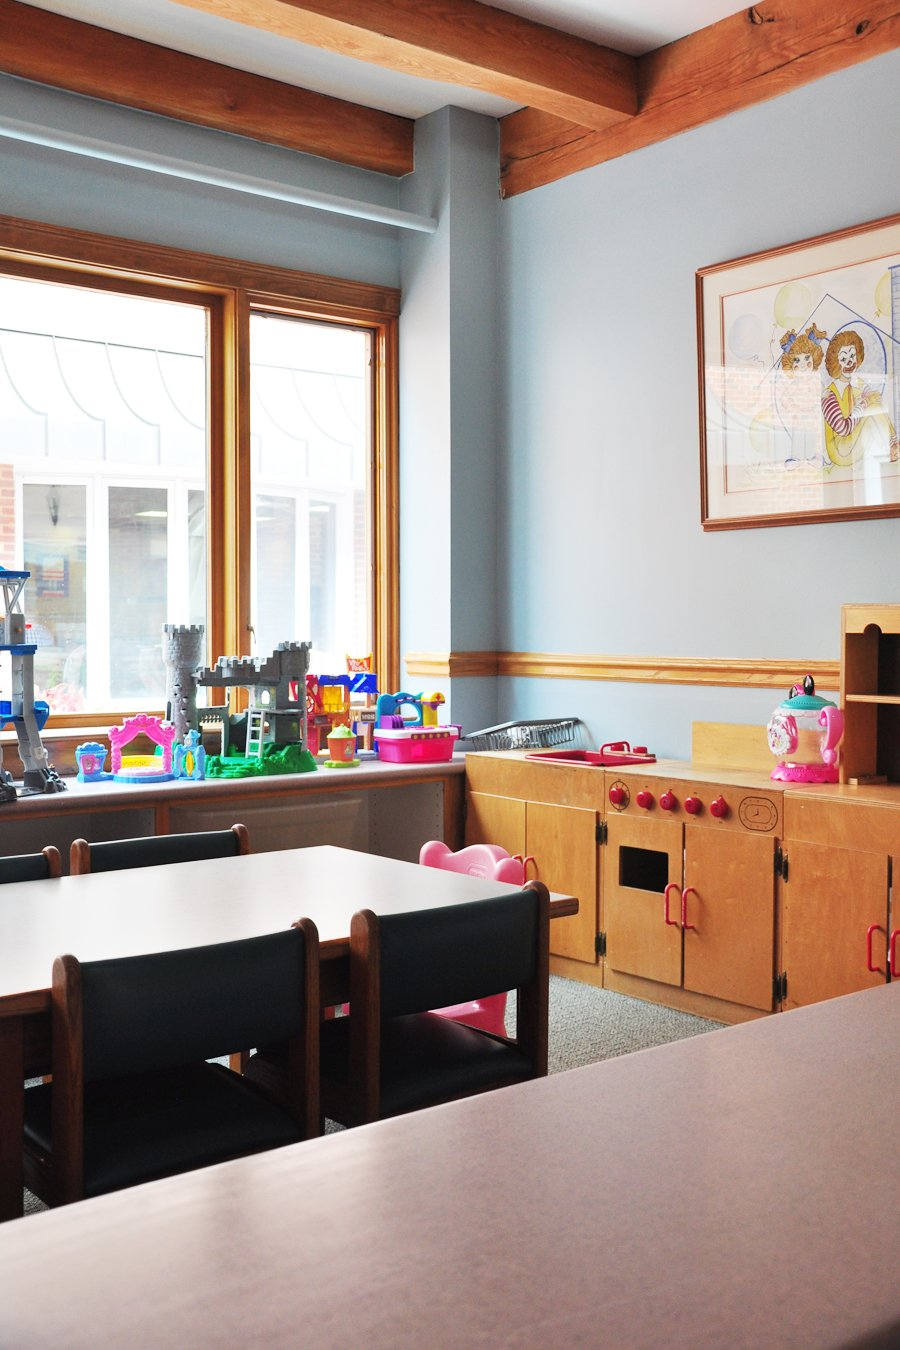 Chattanooga Ronald McDonald House Playroom Redesign: The Before